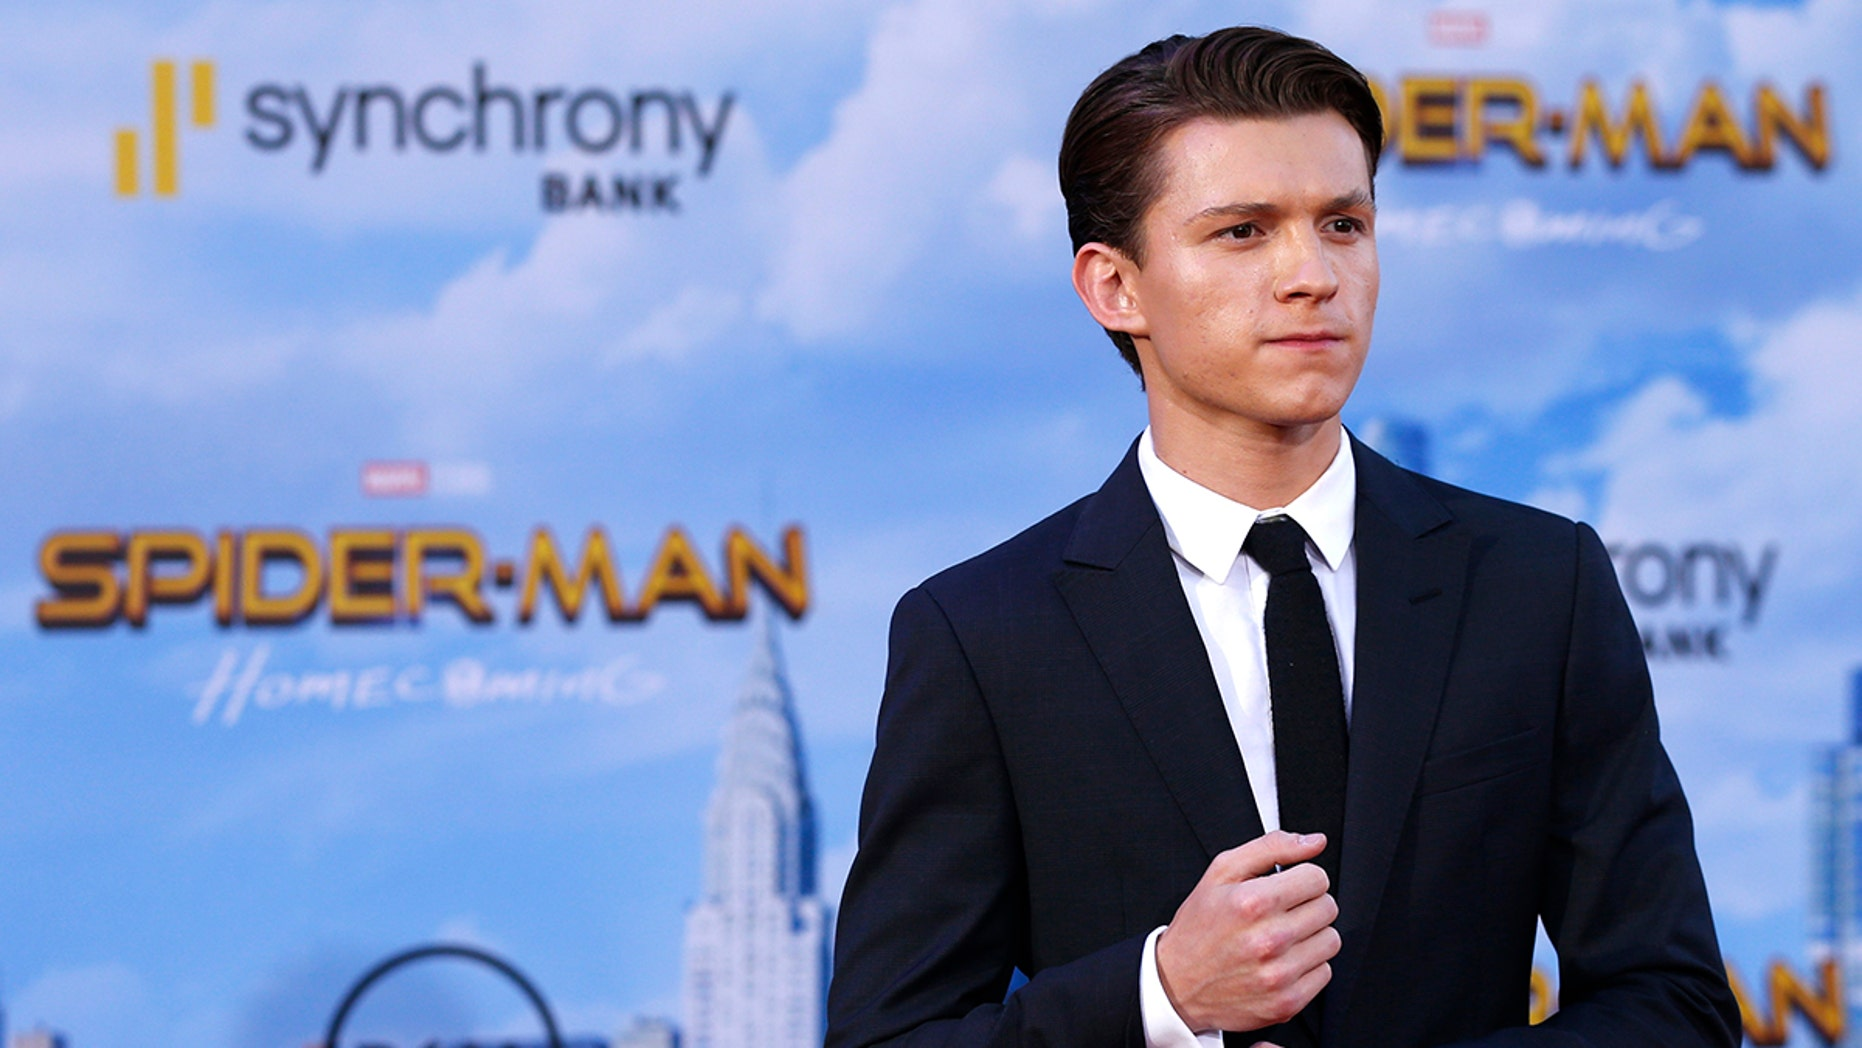 Tom Holland at the 'Spider-Man: Homecoming' premiere in Los Angeles.